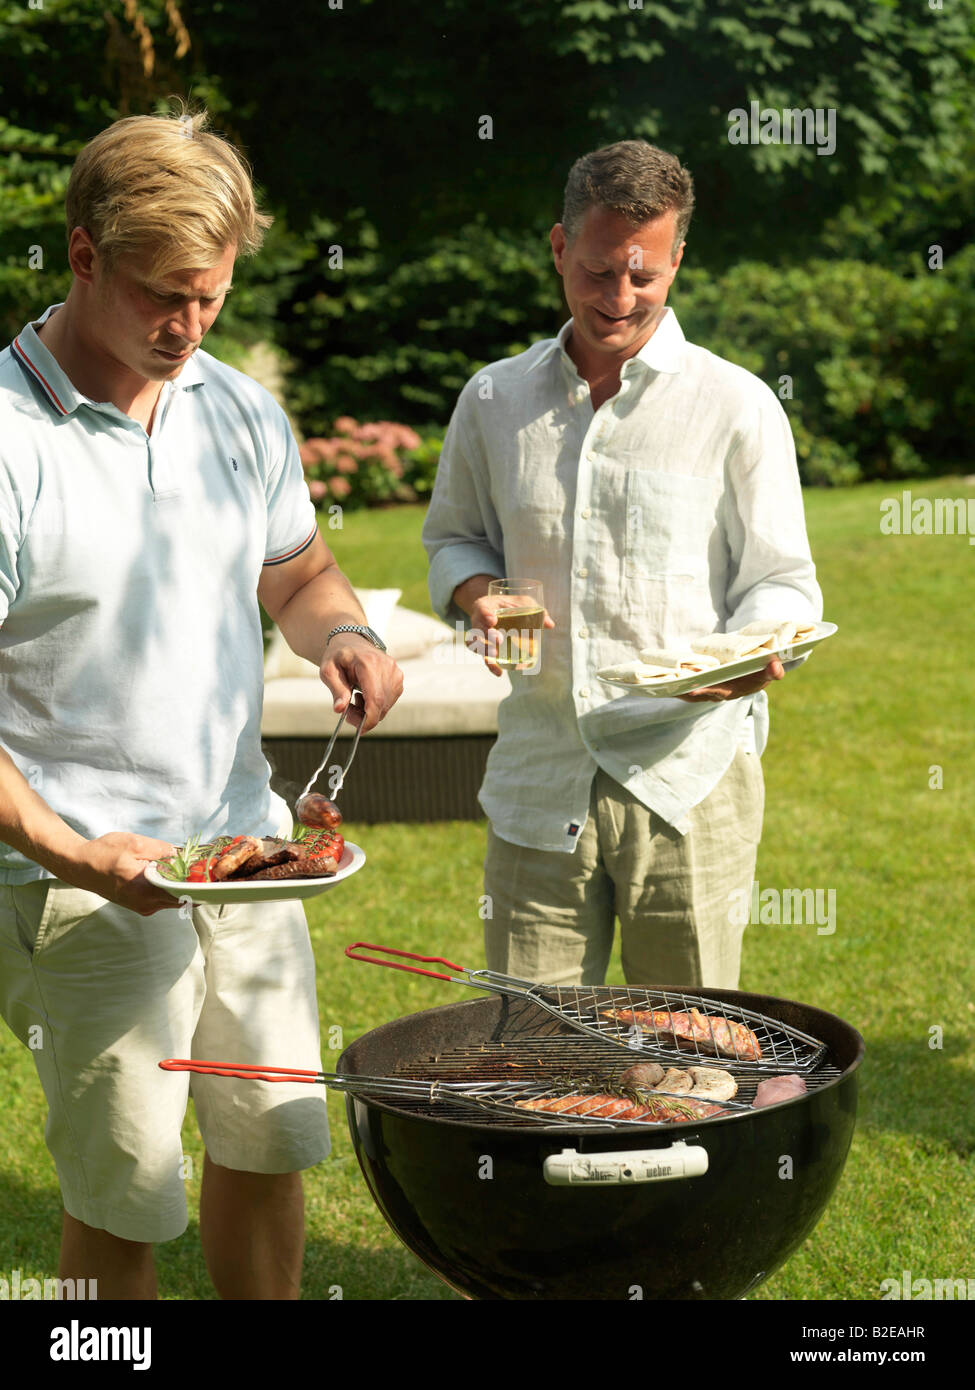 Two men preparing fish on barbeque grill in garden - Stock Image